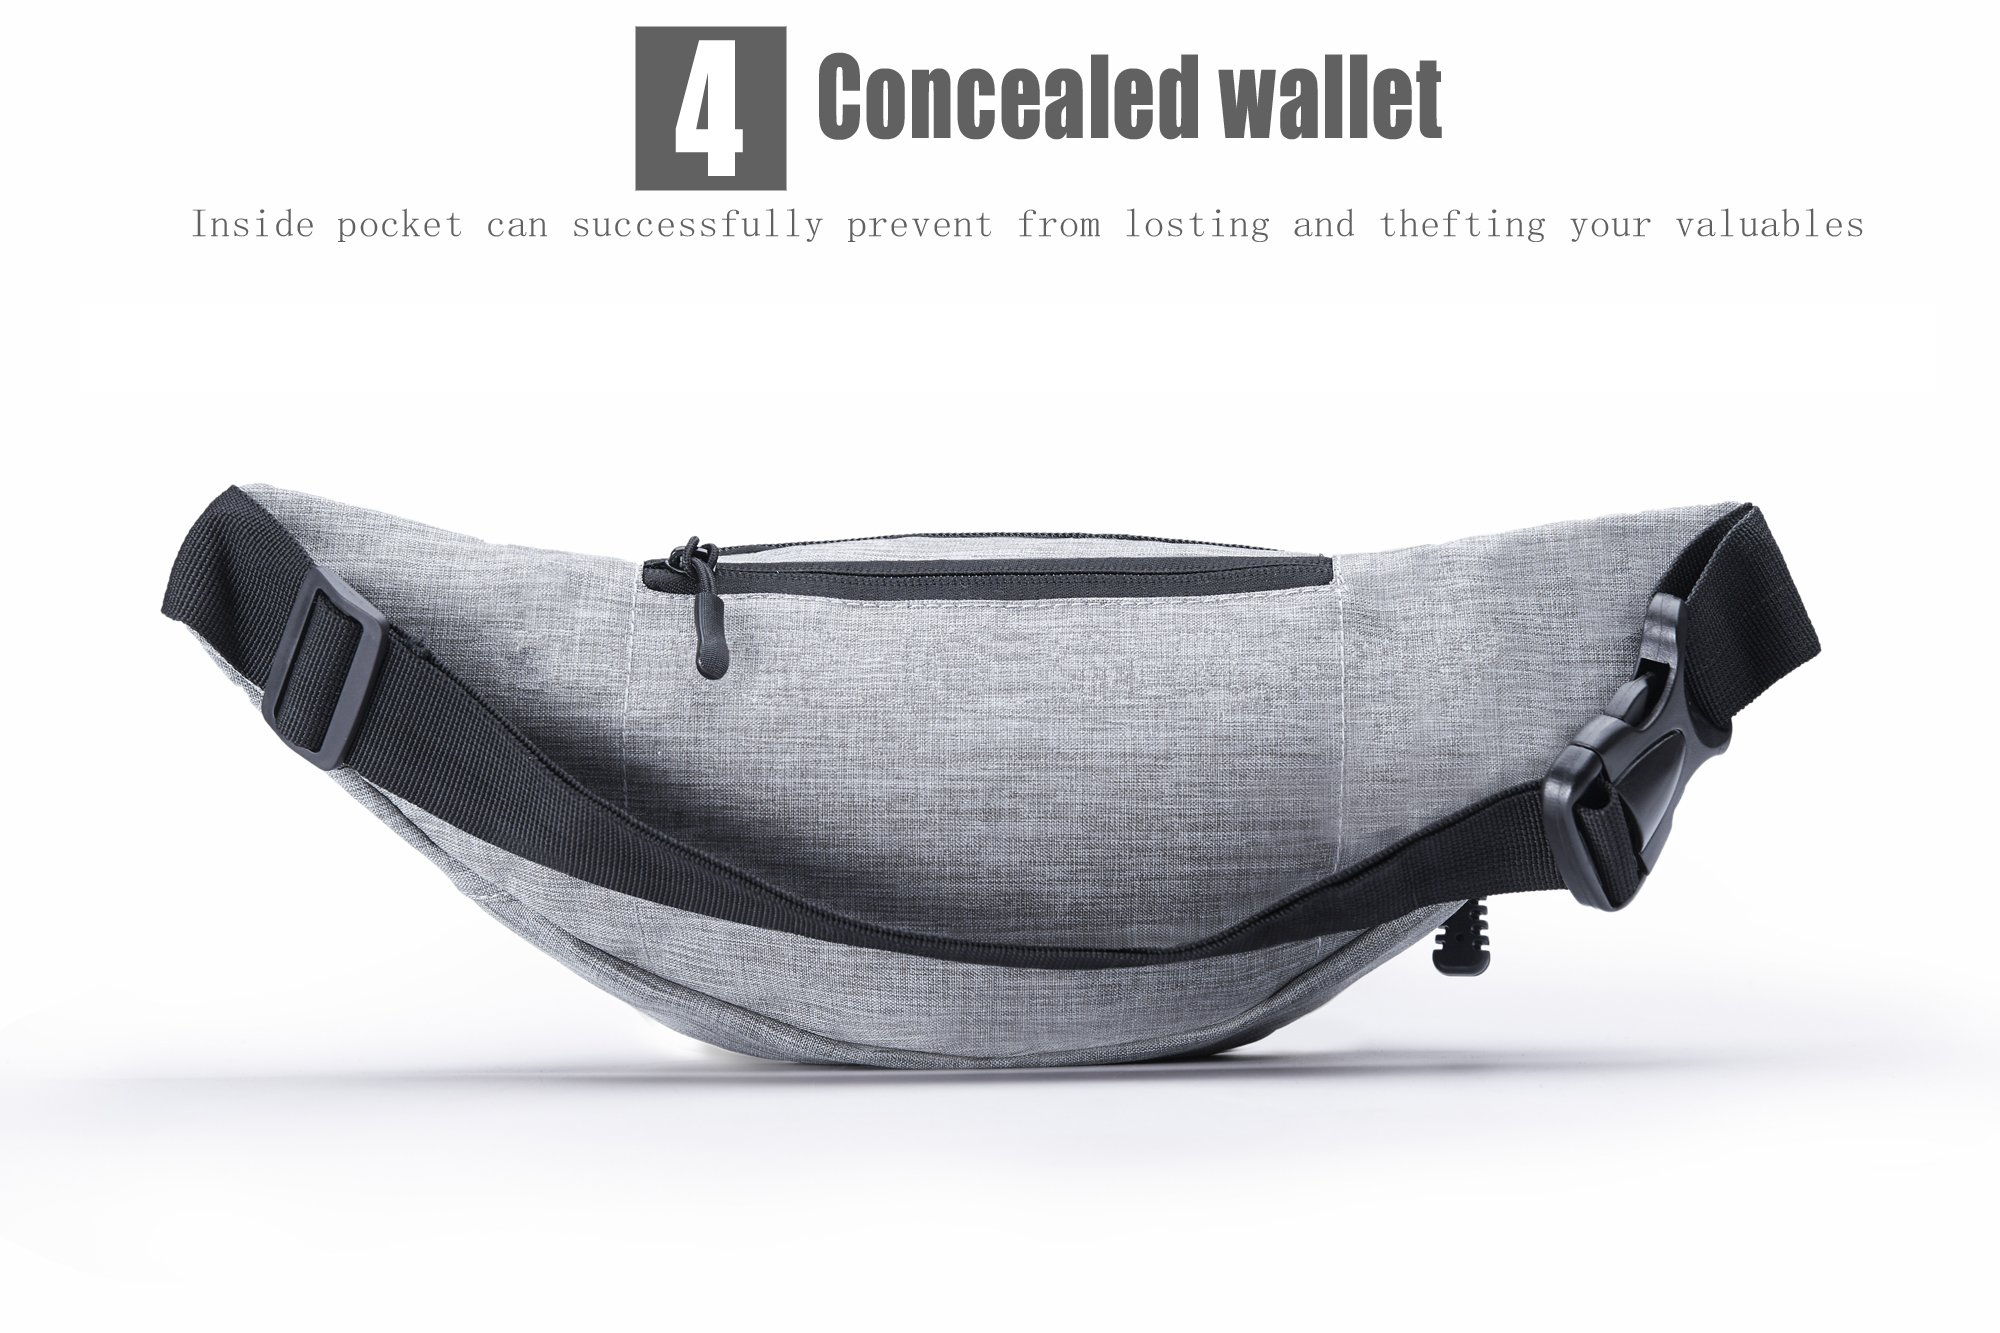 EAOOK Waterproof Travel Belt,Big Fanny Pack for Outdoor Sport/Money Belt(Grey) by EAOOK (Image #6)